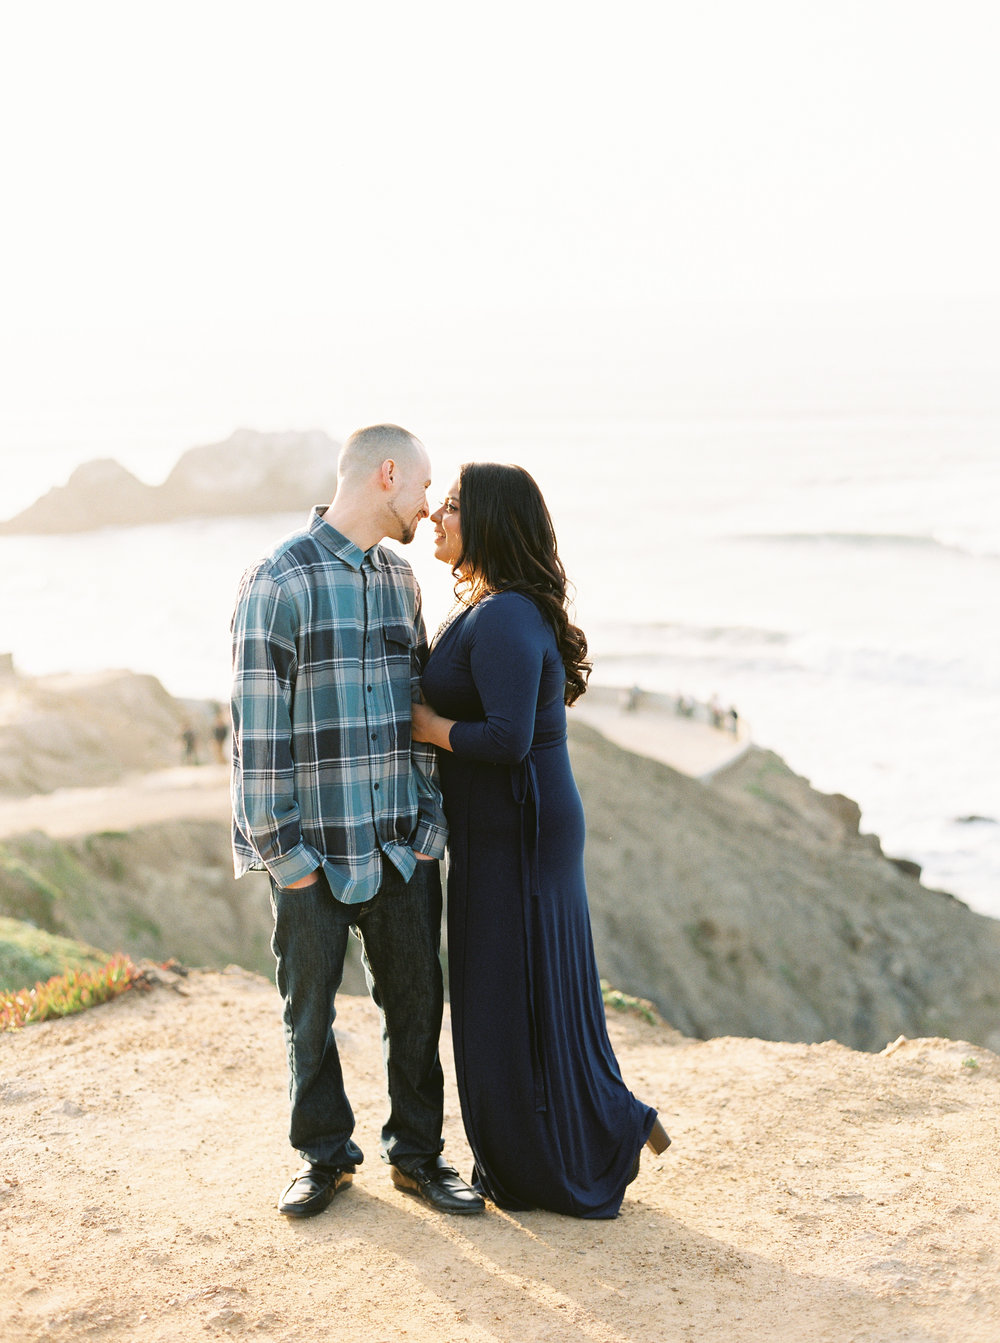 sutro-baths-engagement-session-51.jpg